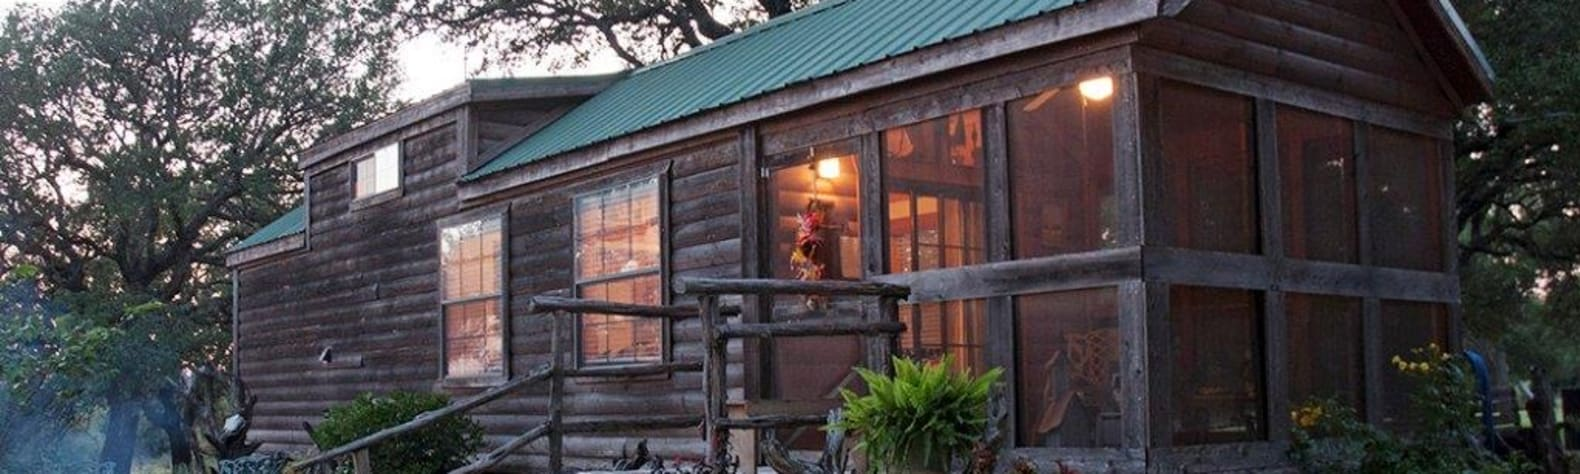 Quaint Cabin in the Woods